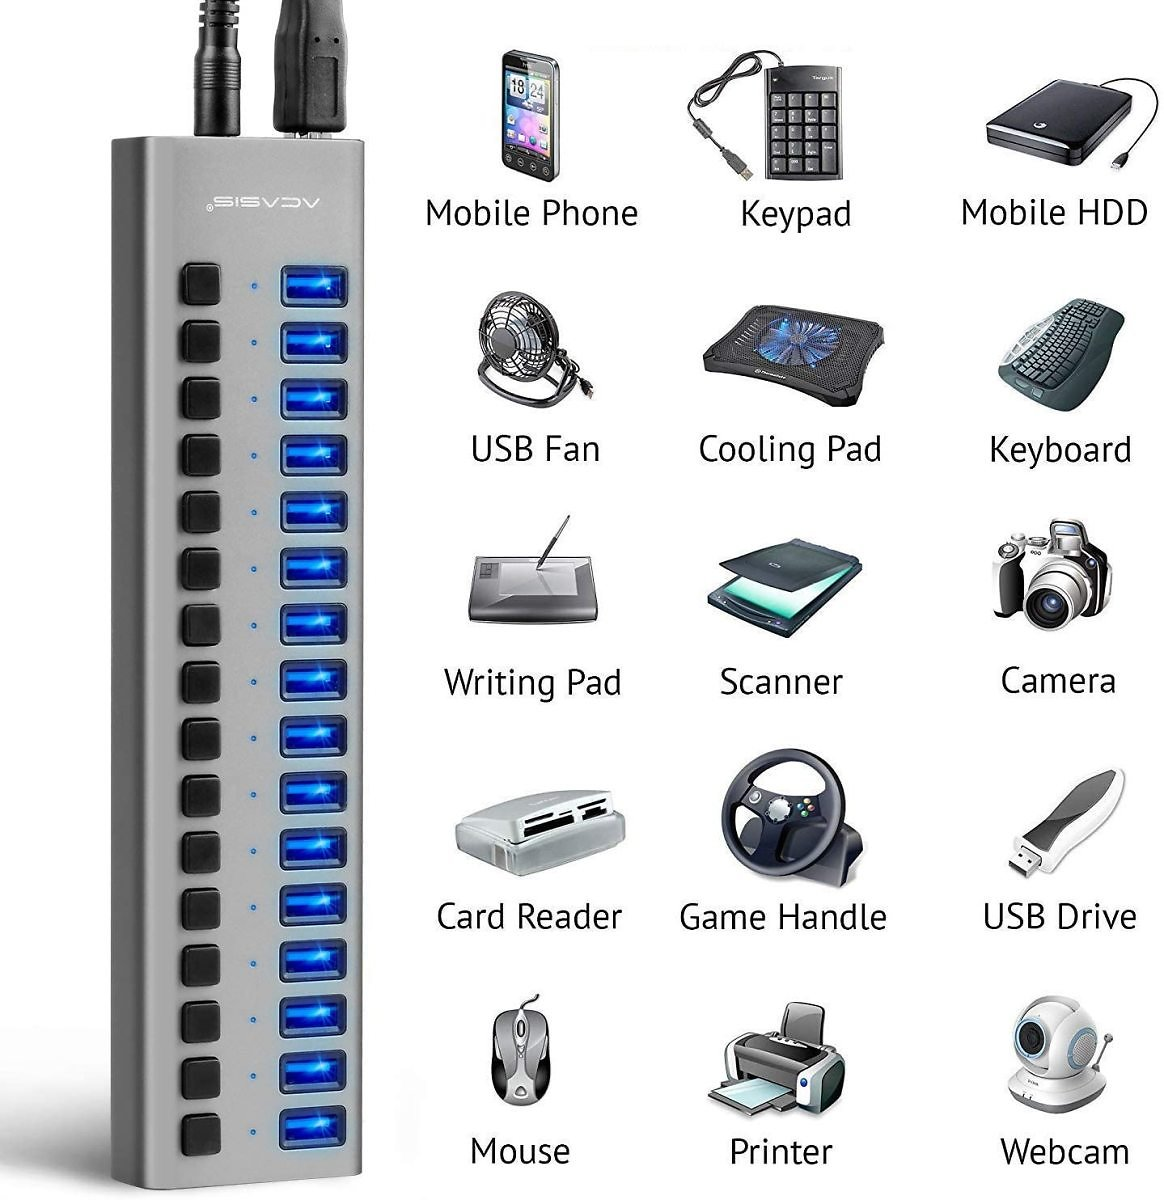 Powered USB Hub - ACASIS 16 Ports 90W USB 3.0 Data Hub - with Individual On/Off Switches and 12V/7.5A Power Adapter